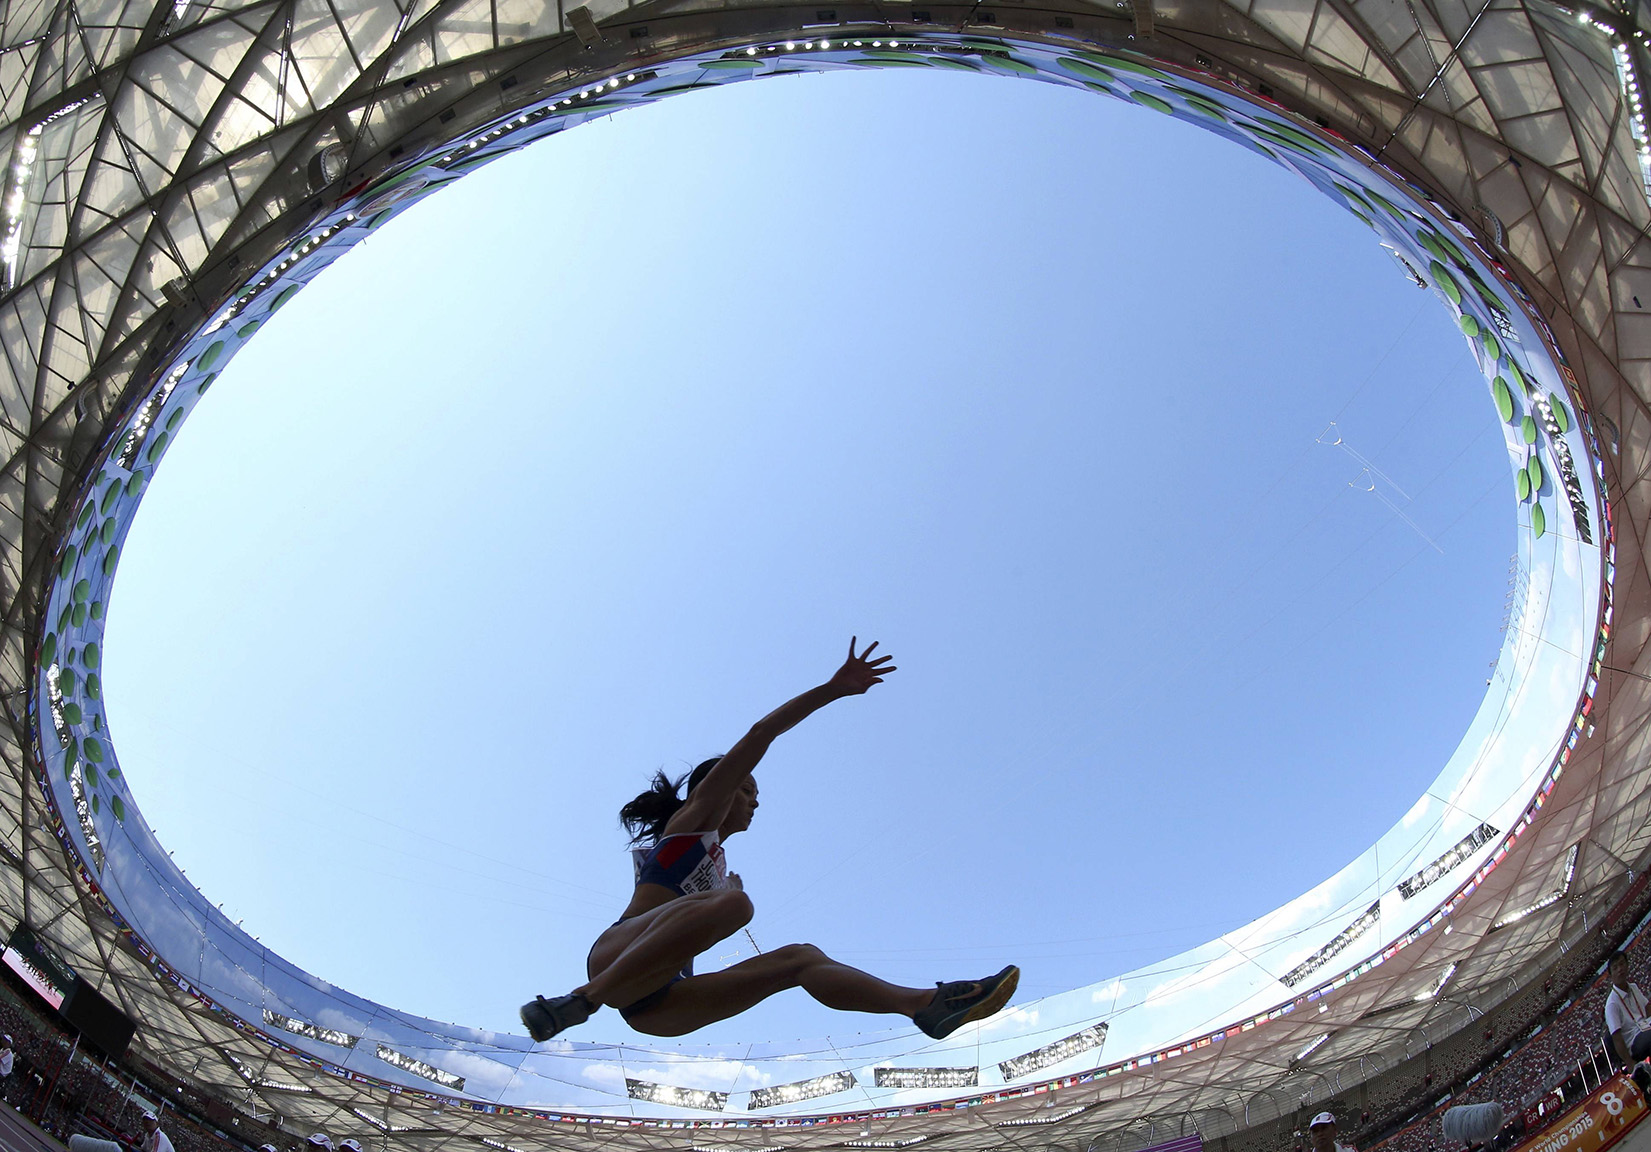 Johnson-Thompson of Britain competes in the women's long jump qualifying round during the 15th IAAF World Championships at the National Stadium in Beijing